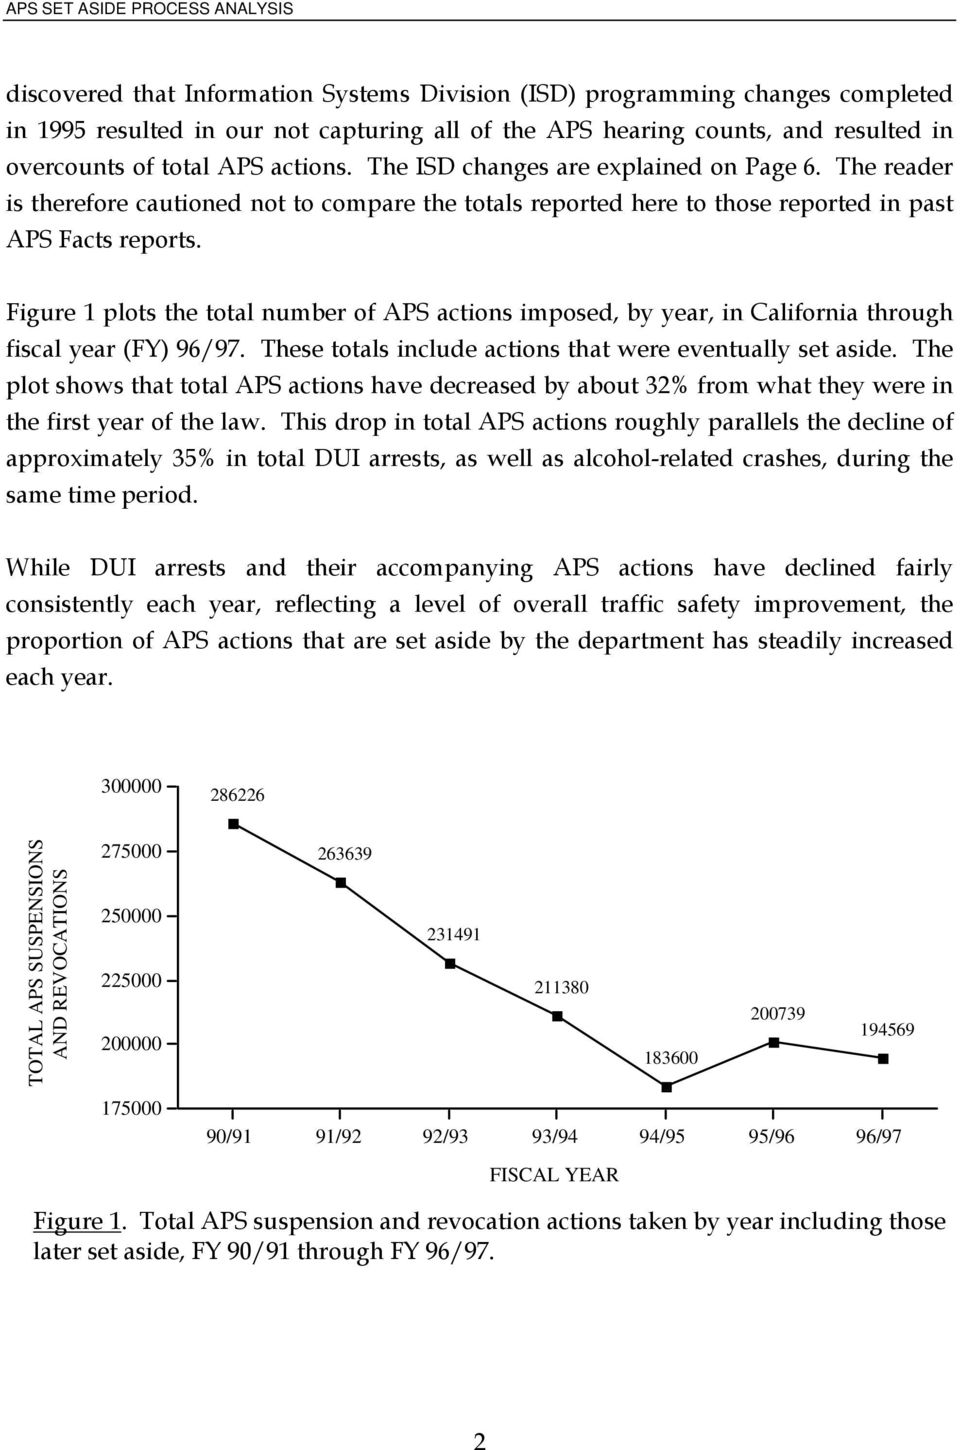 Figure 1 plots the total number of APS actions imposed, by year, in California through fiscal year (FY) 96/97. These totals include actions that were eventually set aside.